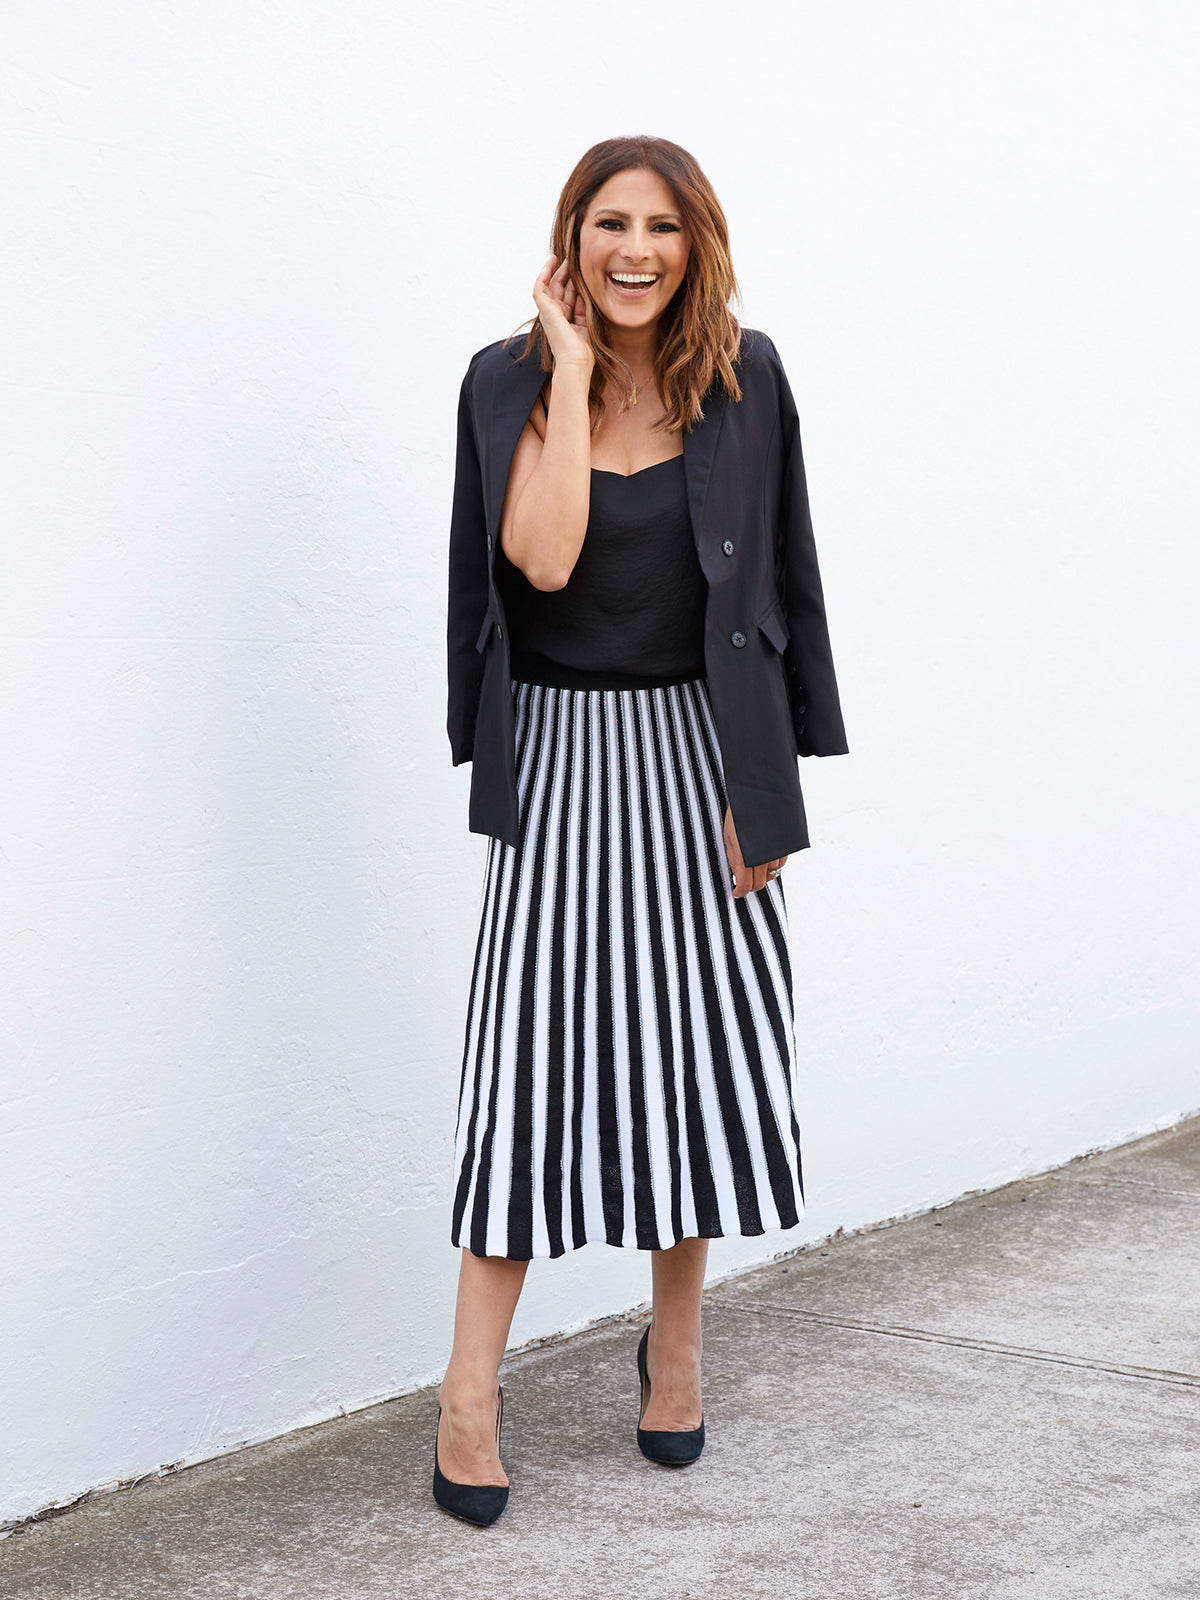 THE WILD HEART BLACK AND WHITE SKIRT